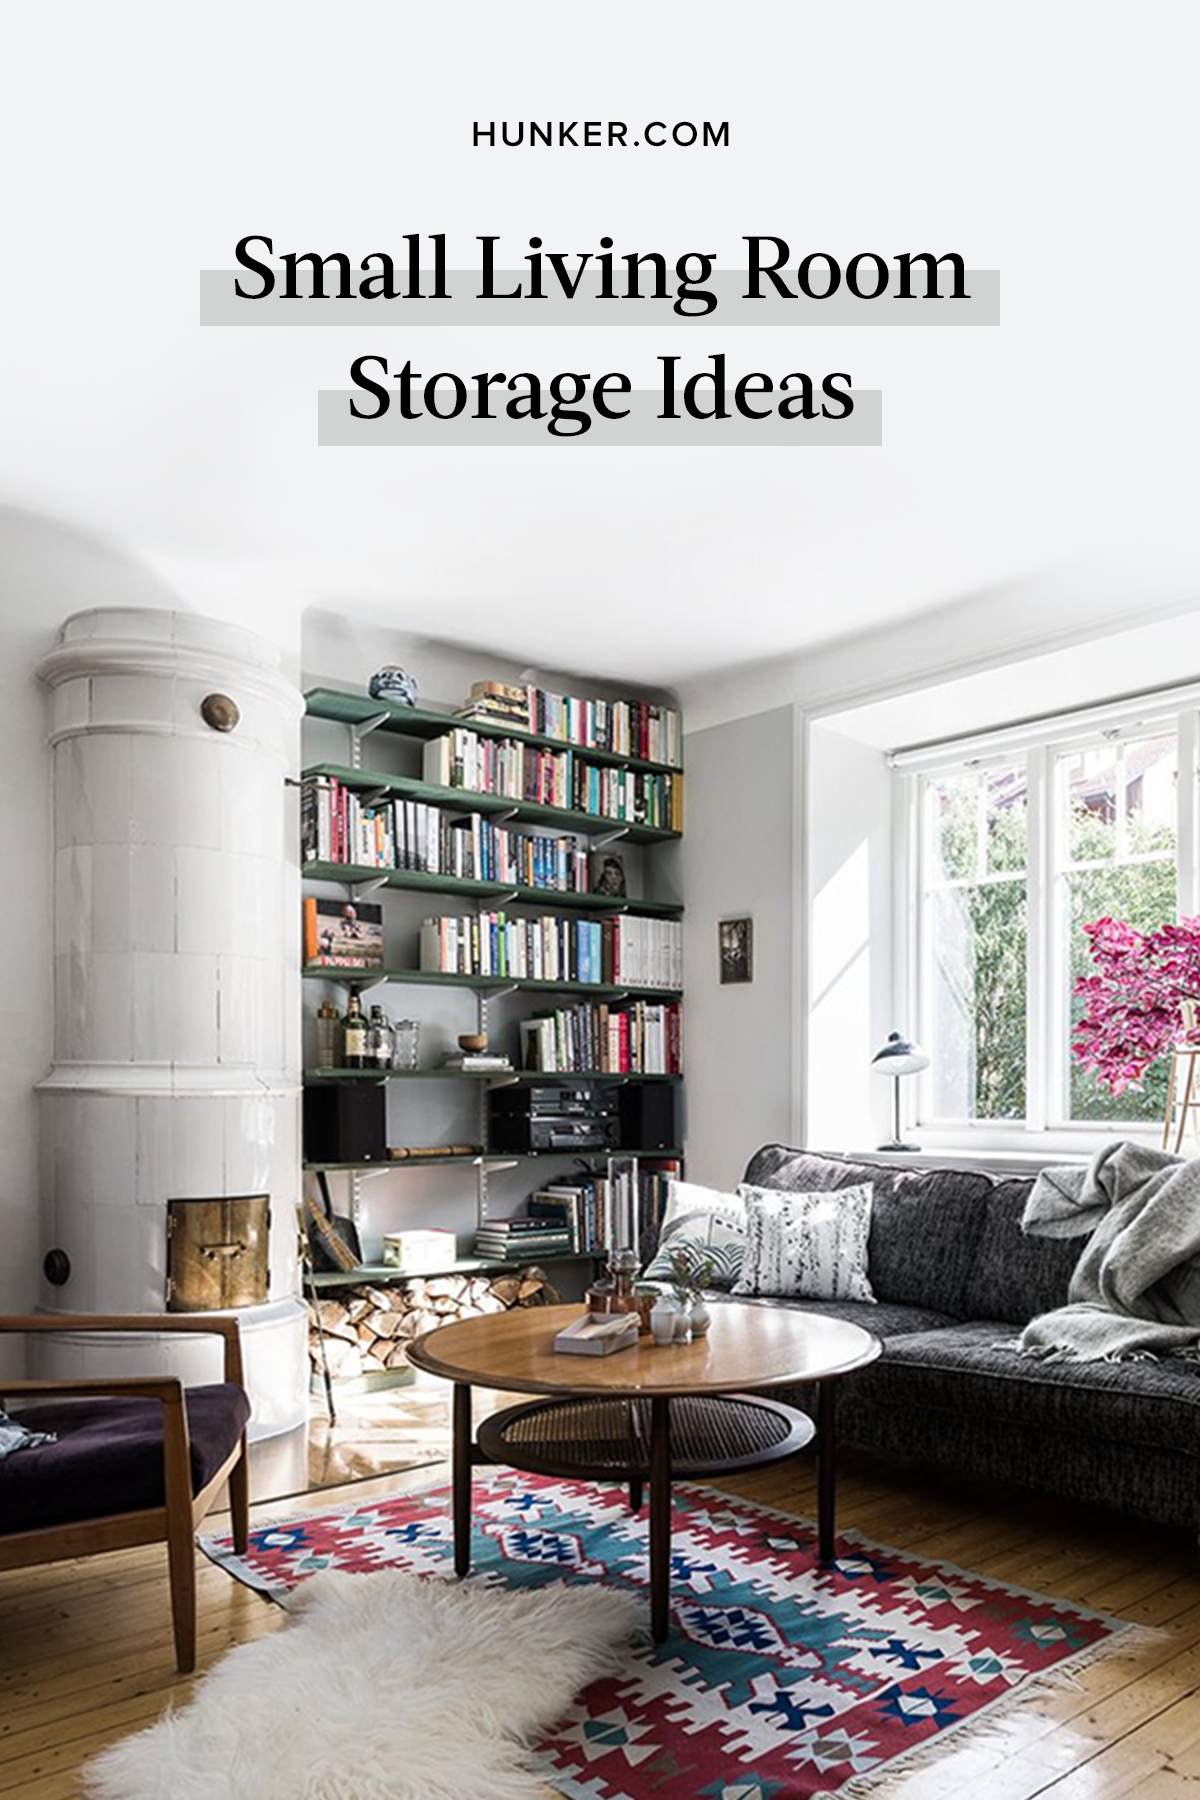 Yep That S Right These Small Living Room Ideas Will Pretty Much Solve Your Storage Plight Hunker Small Living Room Small Living Rooms Small Living #small #living #room #storage #ideas